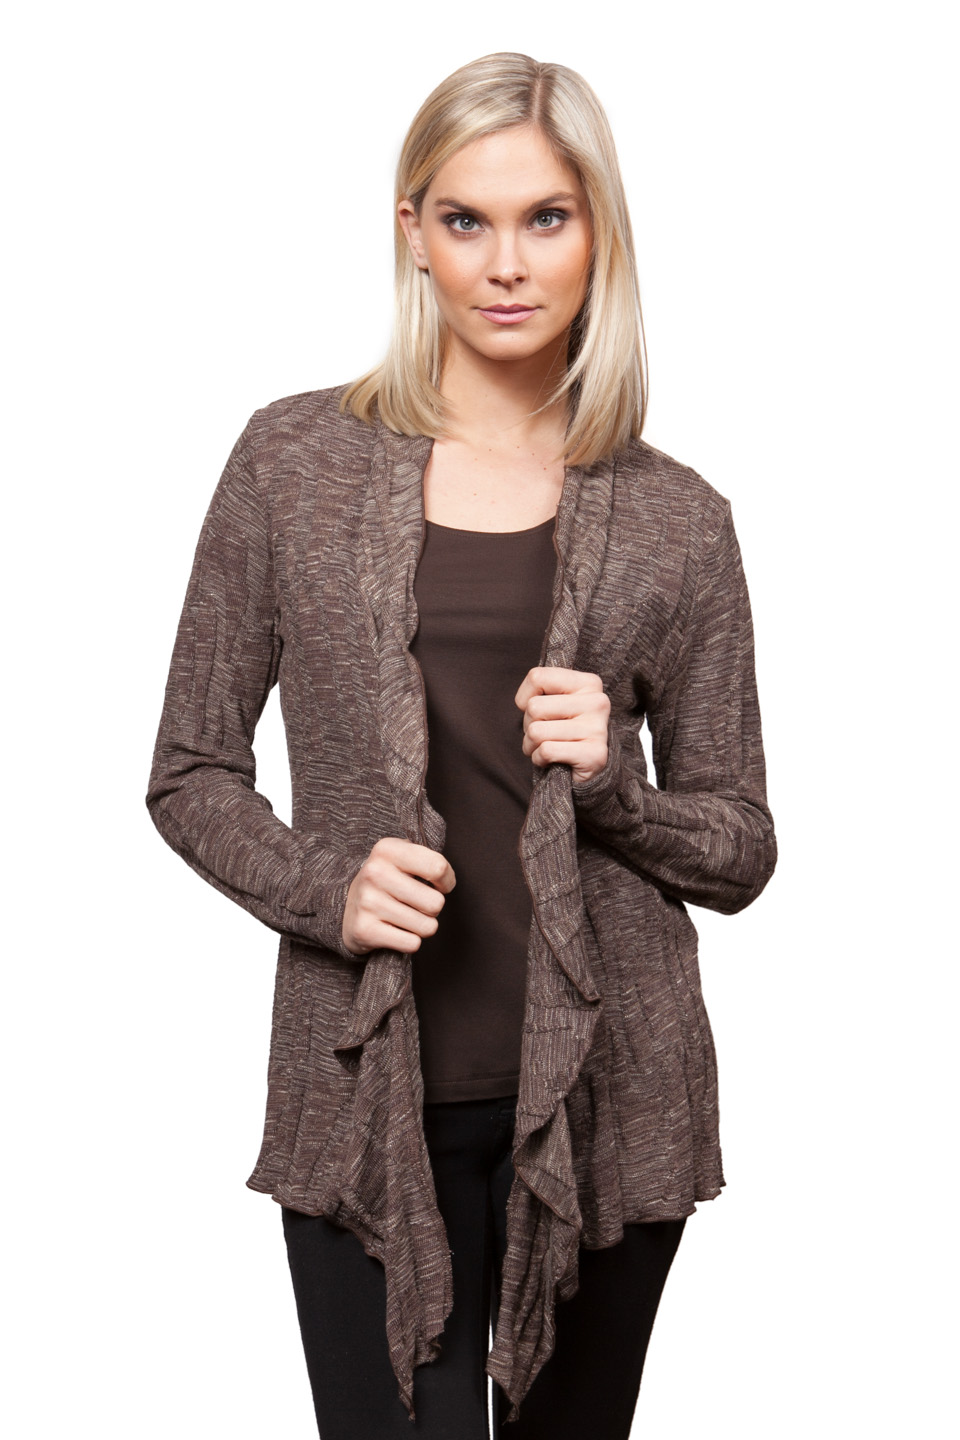 Copy of Style # 18248-16, p. 14<br>Space Dyed Jacq'd Knit<br>Color: Walnut, 2 colors<br>w/ Cashmerette Separates p. 7